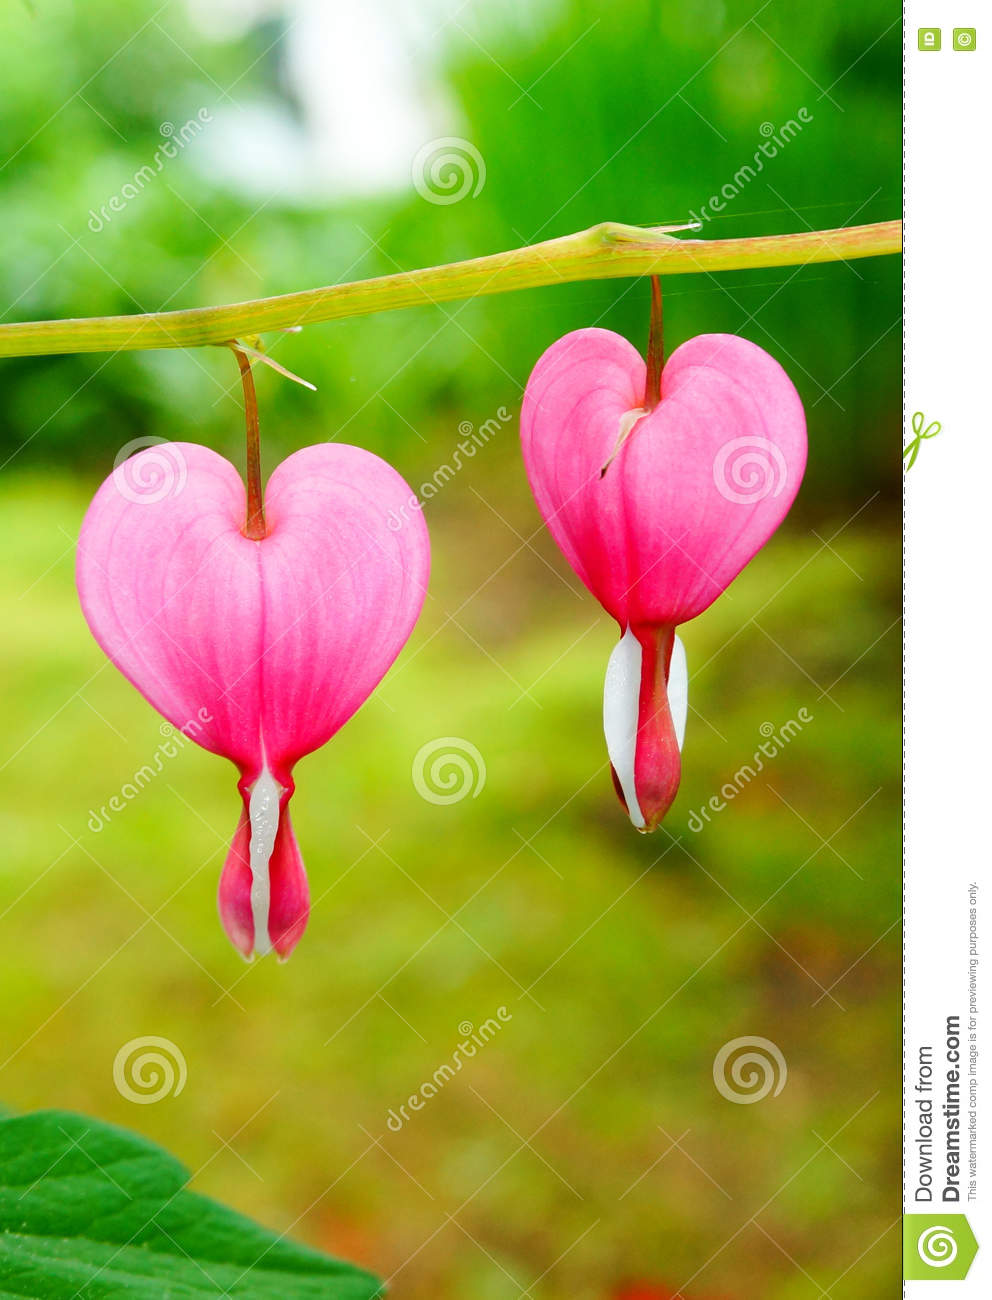 Bleeding heart flowers dicentra spectabils stock photo image of bleeding heart flowers dicentra spectabils bouquet idyllic izmirmasajfo